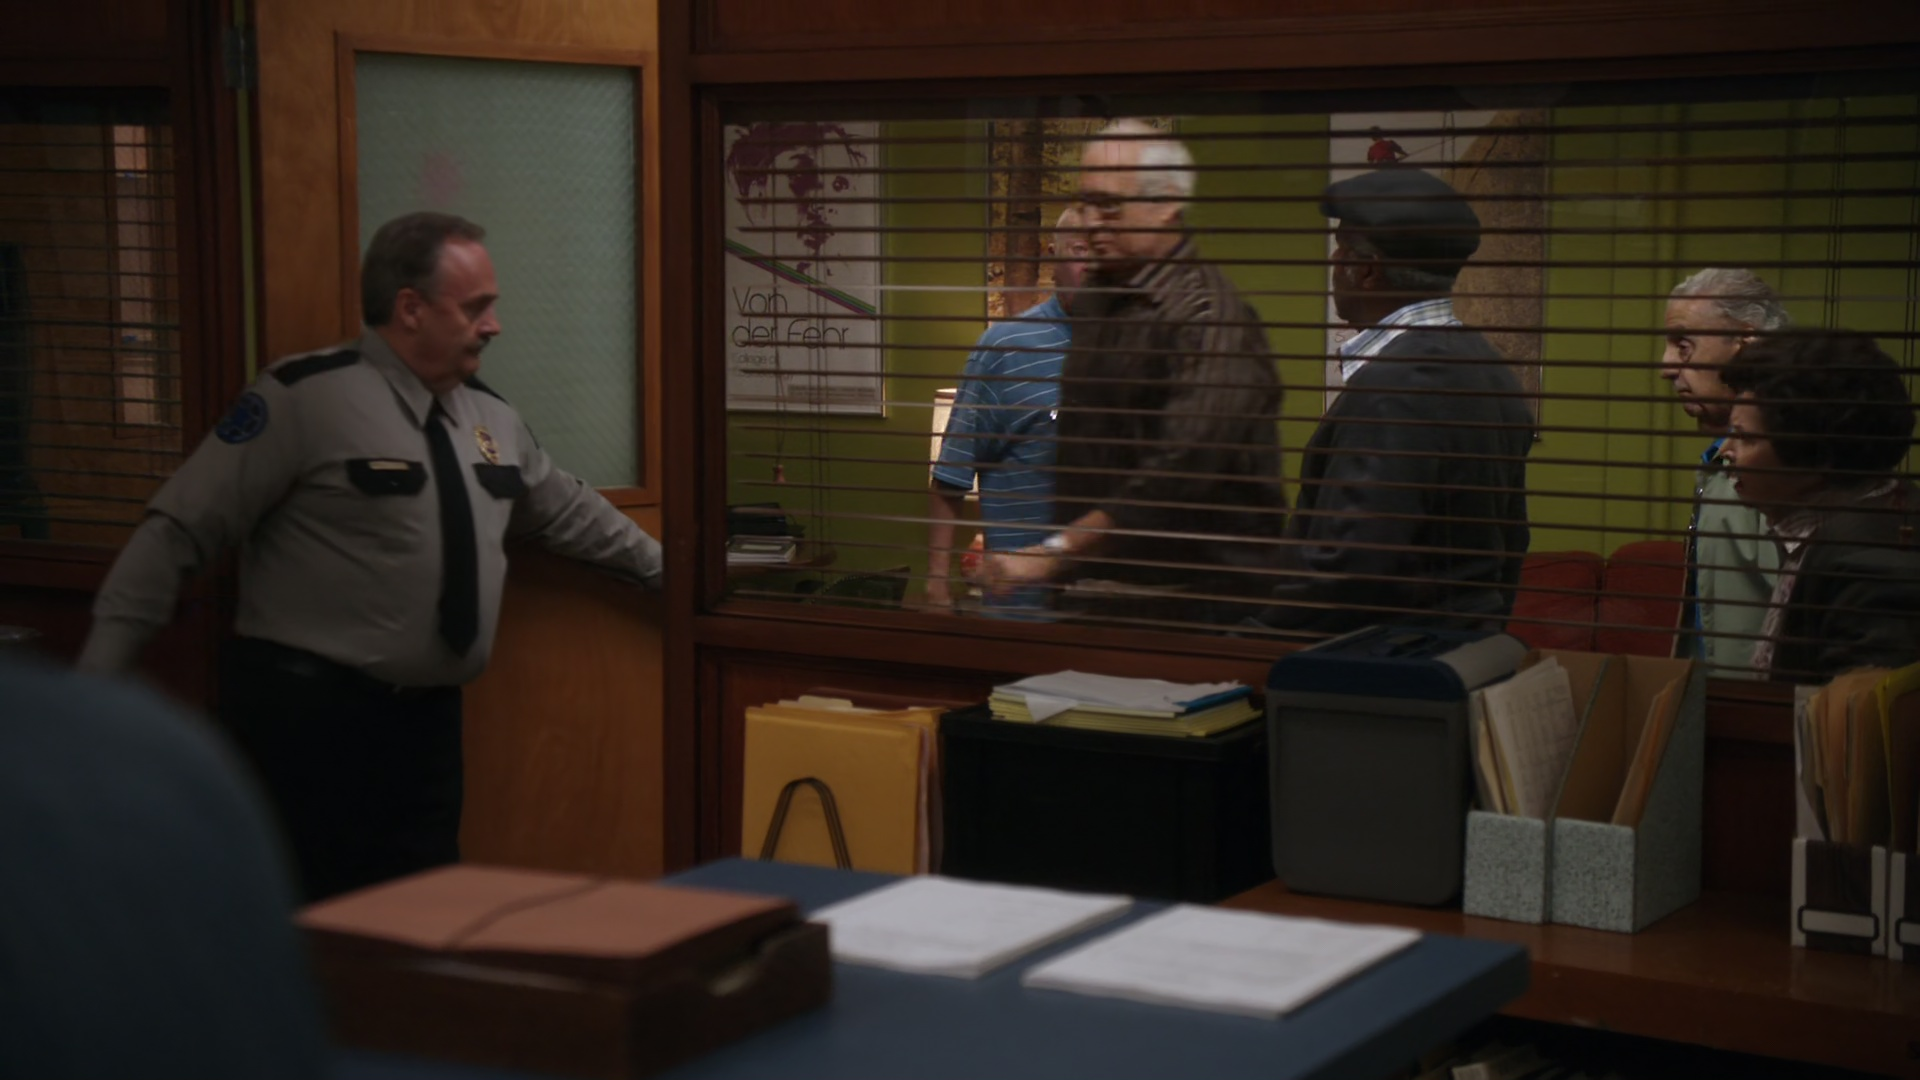 File:2x05-Hipsters office Leonard Pierce released.jpg